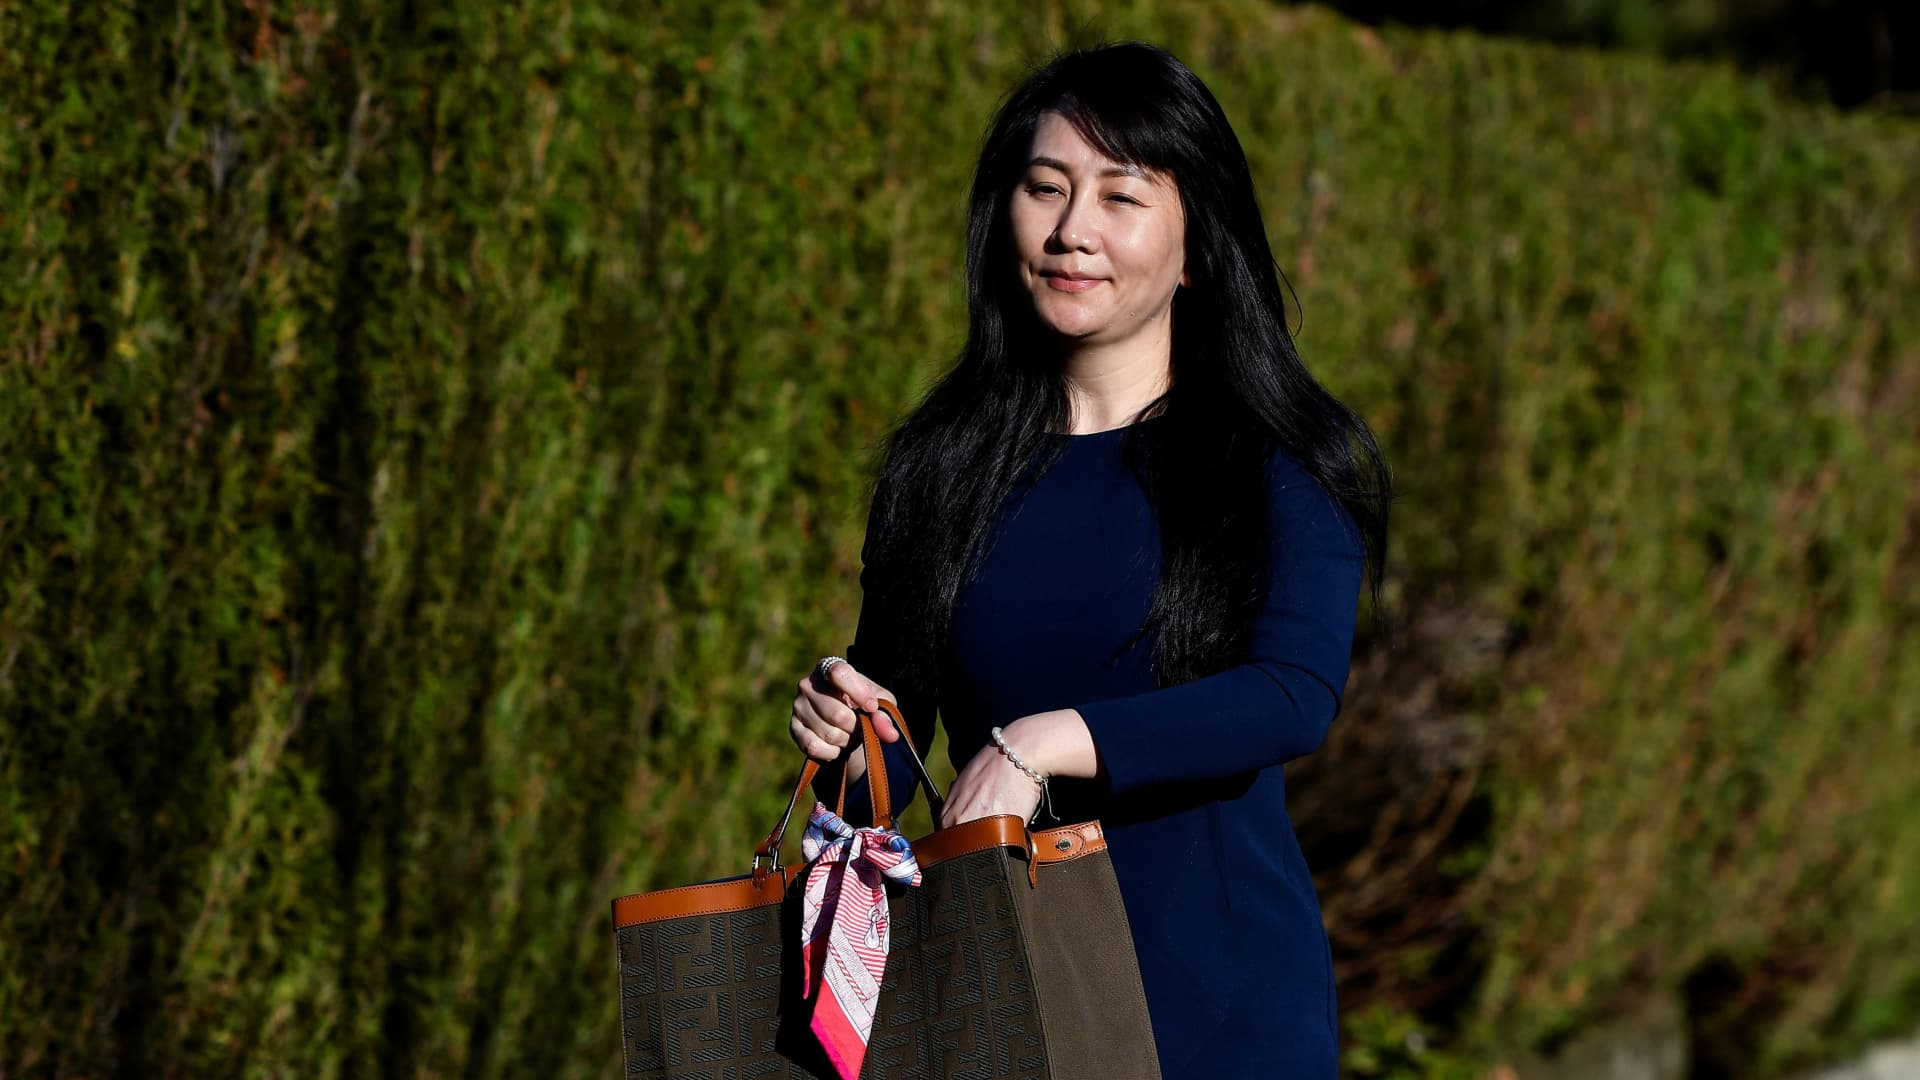 Huawei Technologies Chief Financial Officer Meng Wanzhou reaches into her bag for a face mask as she leaves her home to attend a court hearing in Vancouver, British Columbia, Canada March 15, 2021.